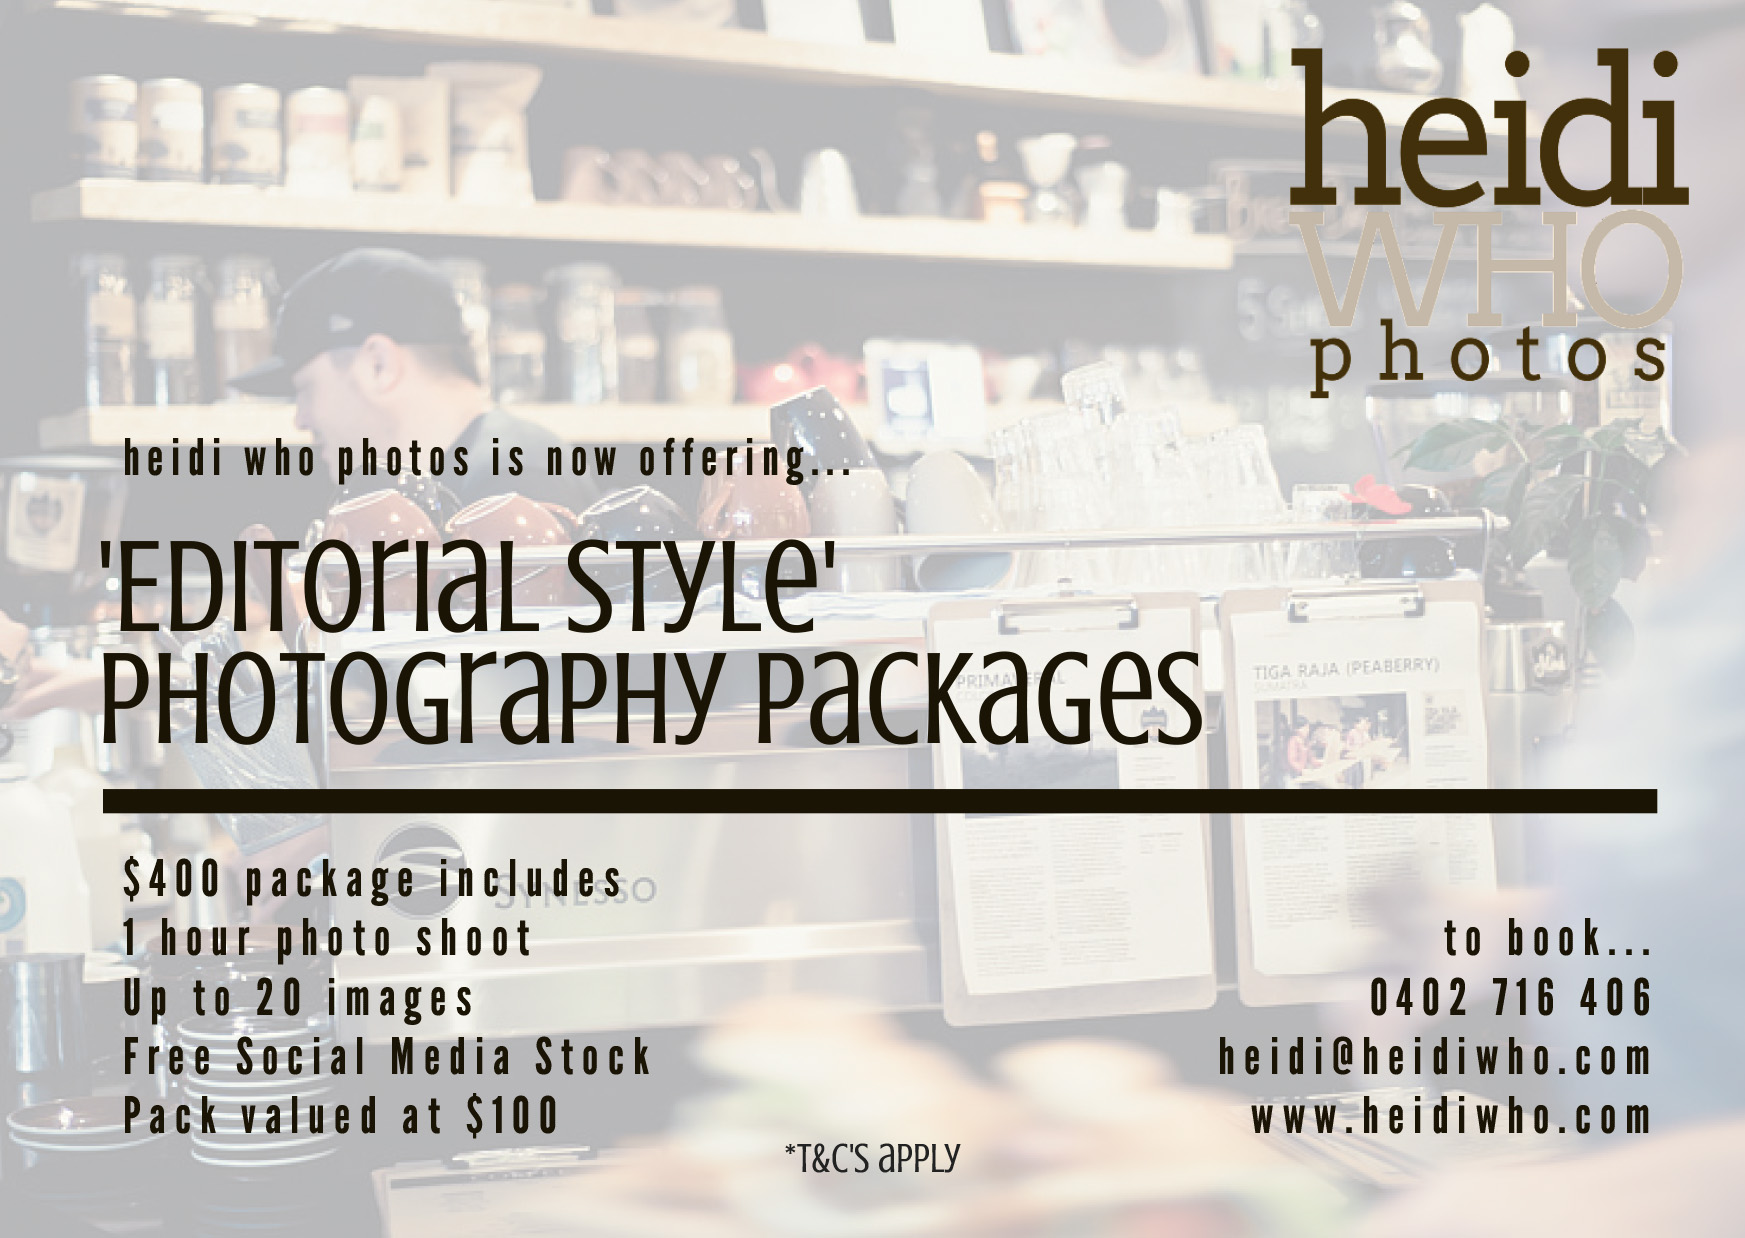 heidi who photos tourism packages